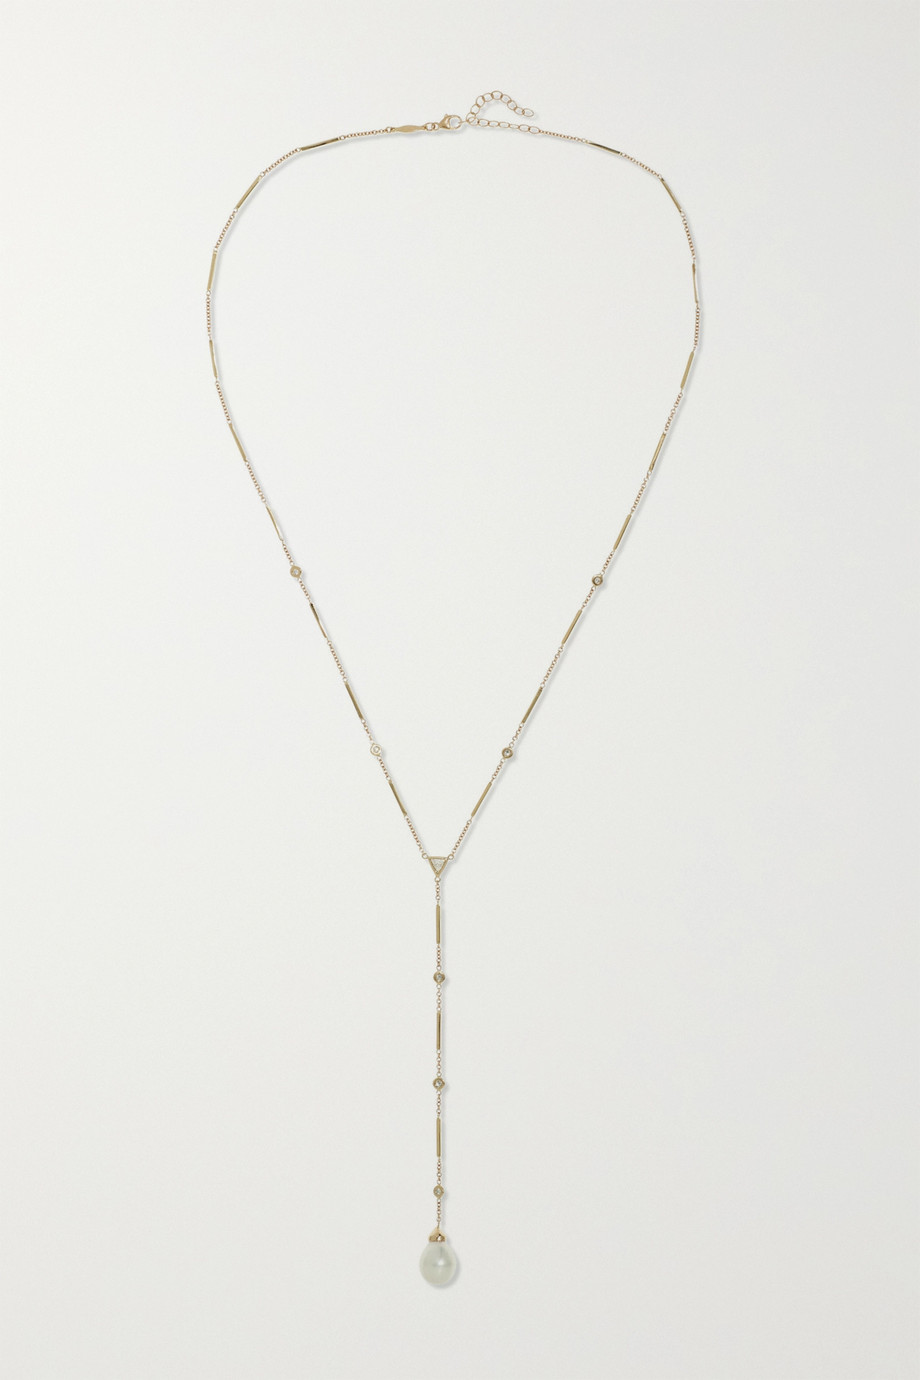 JACQUIE AICHE 14-karat gold, diamond and pearl necklace